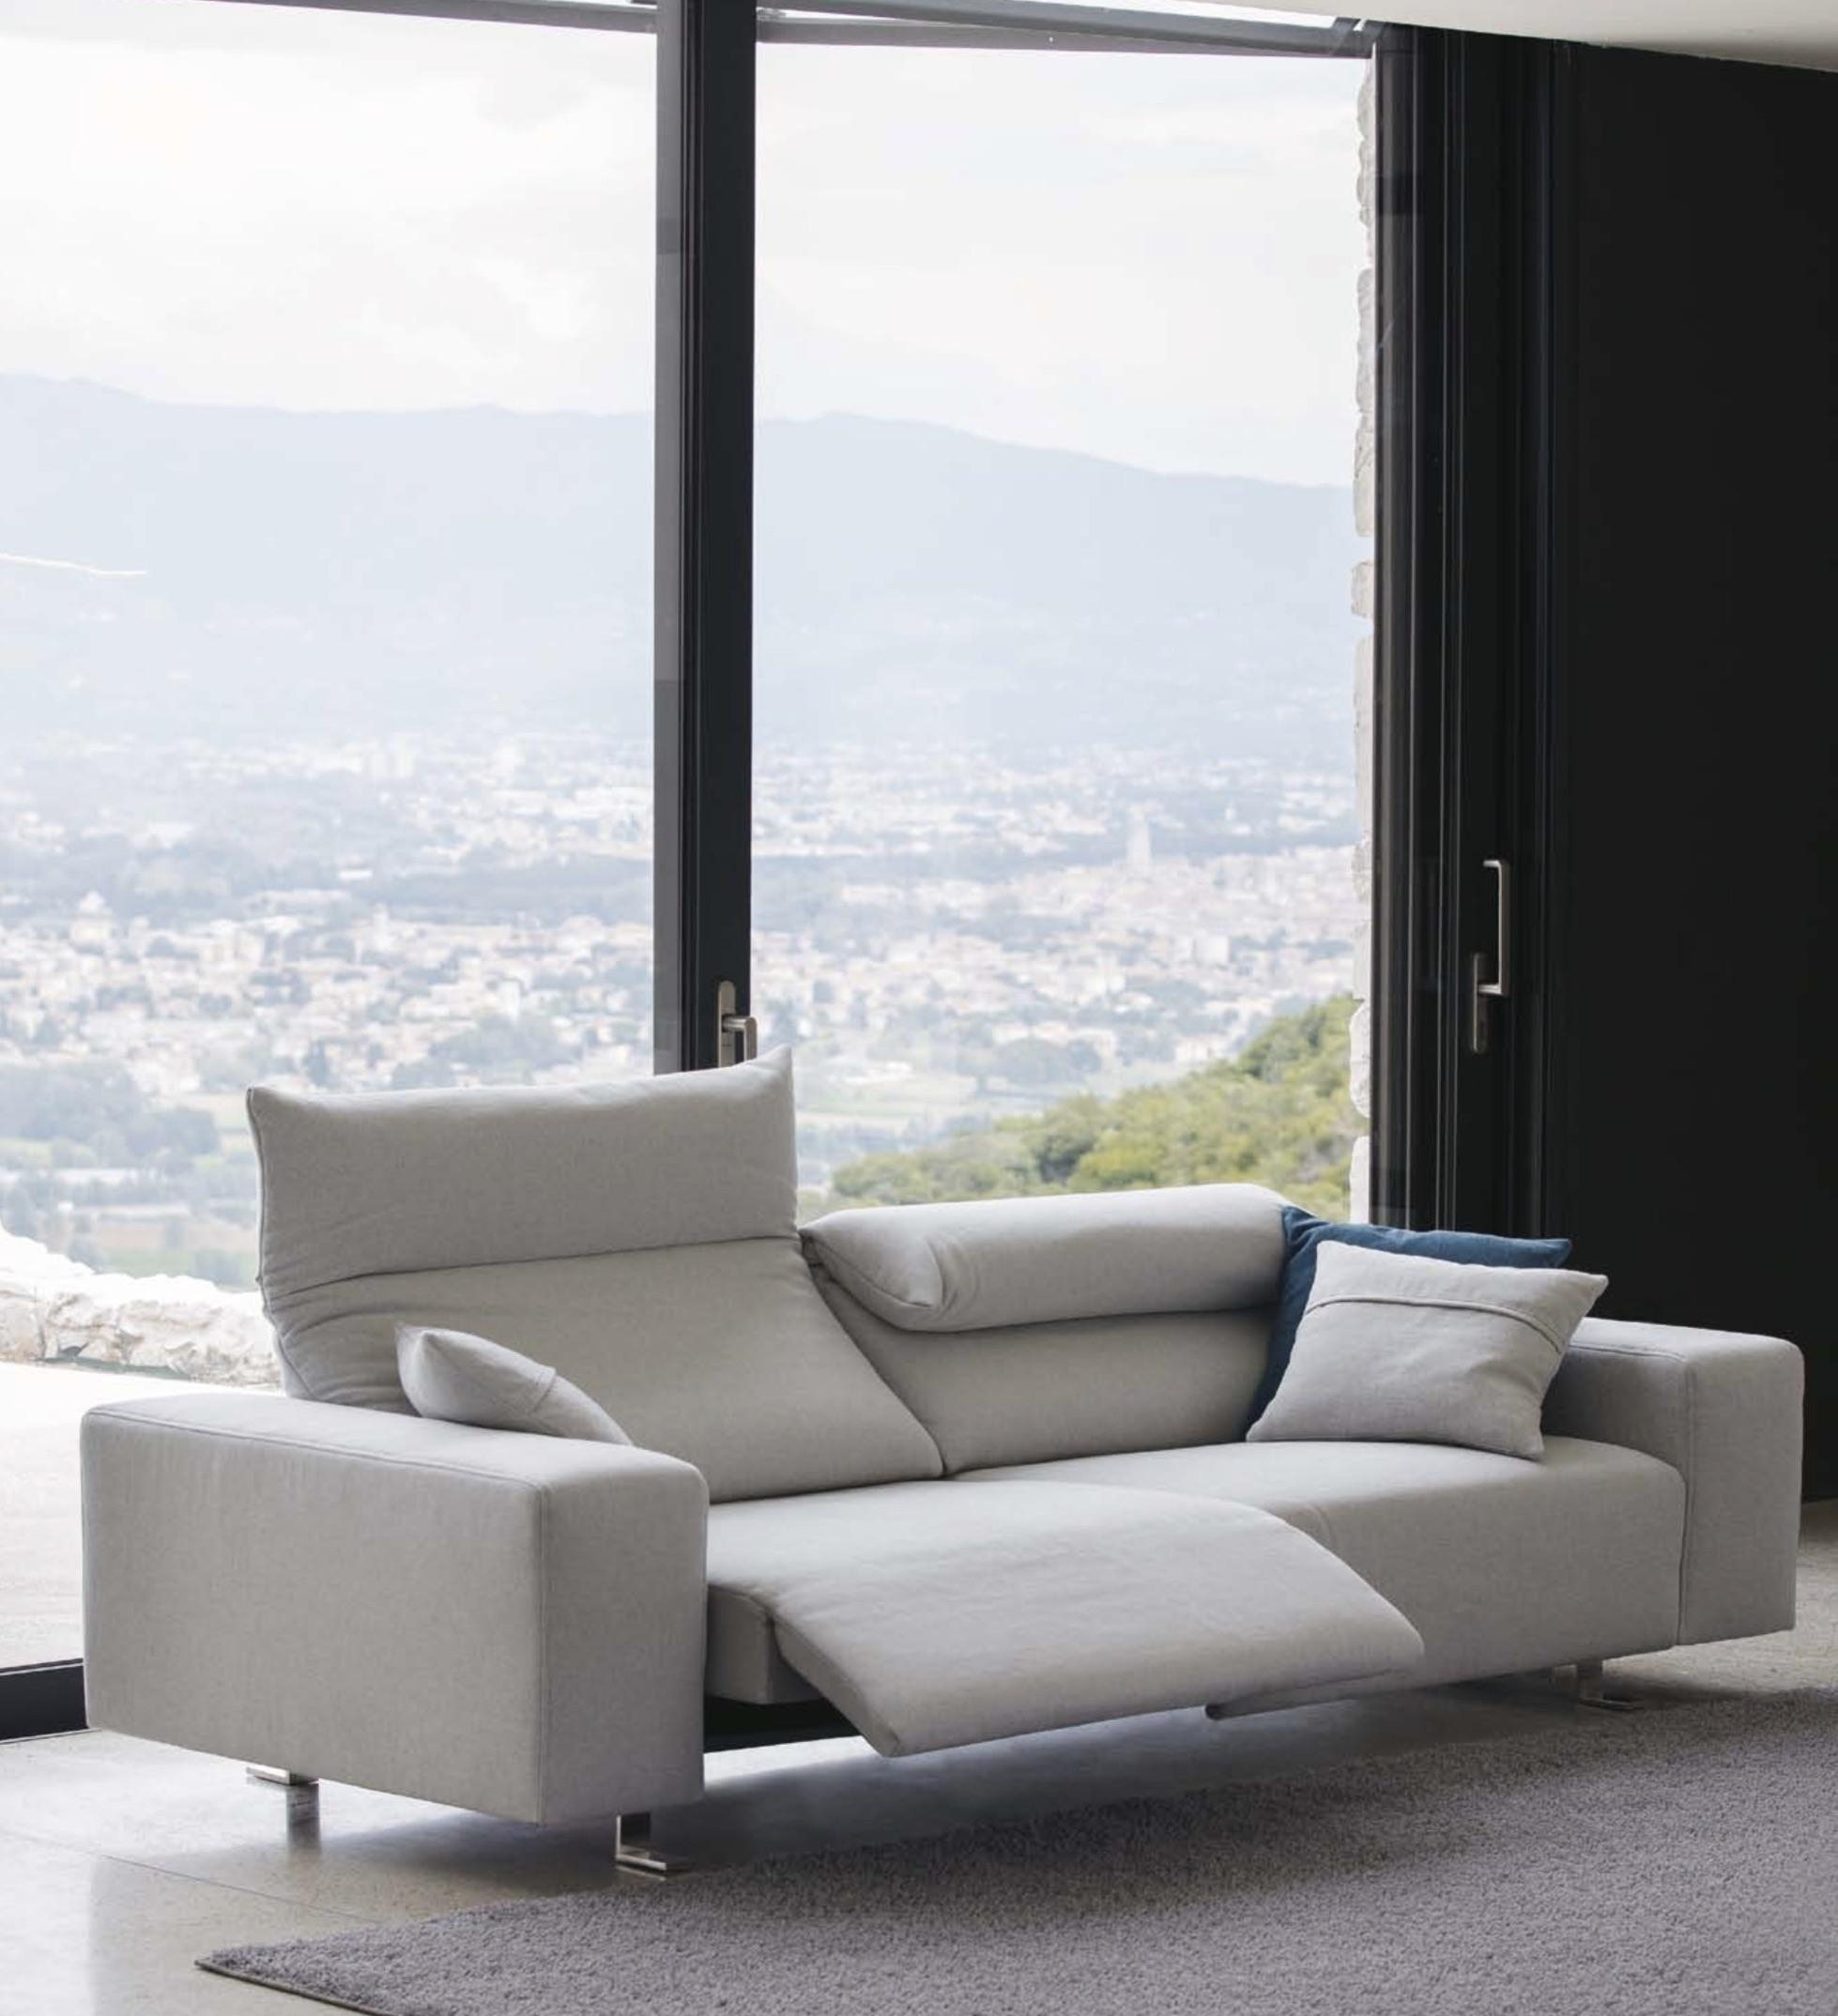 20 Best Ideas Contemporary Sofas And Chairs